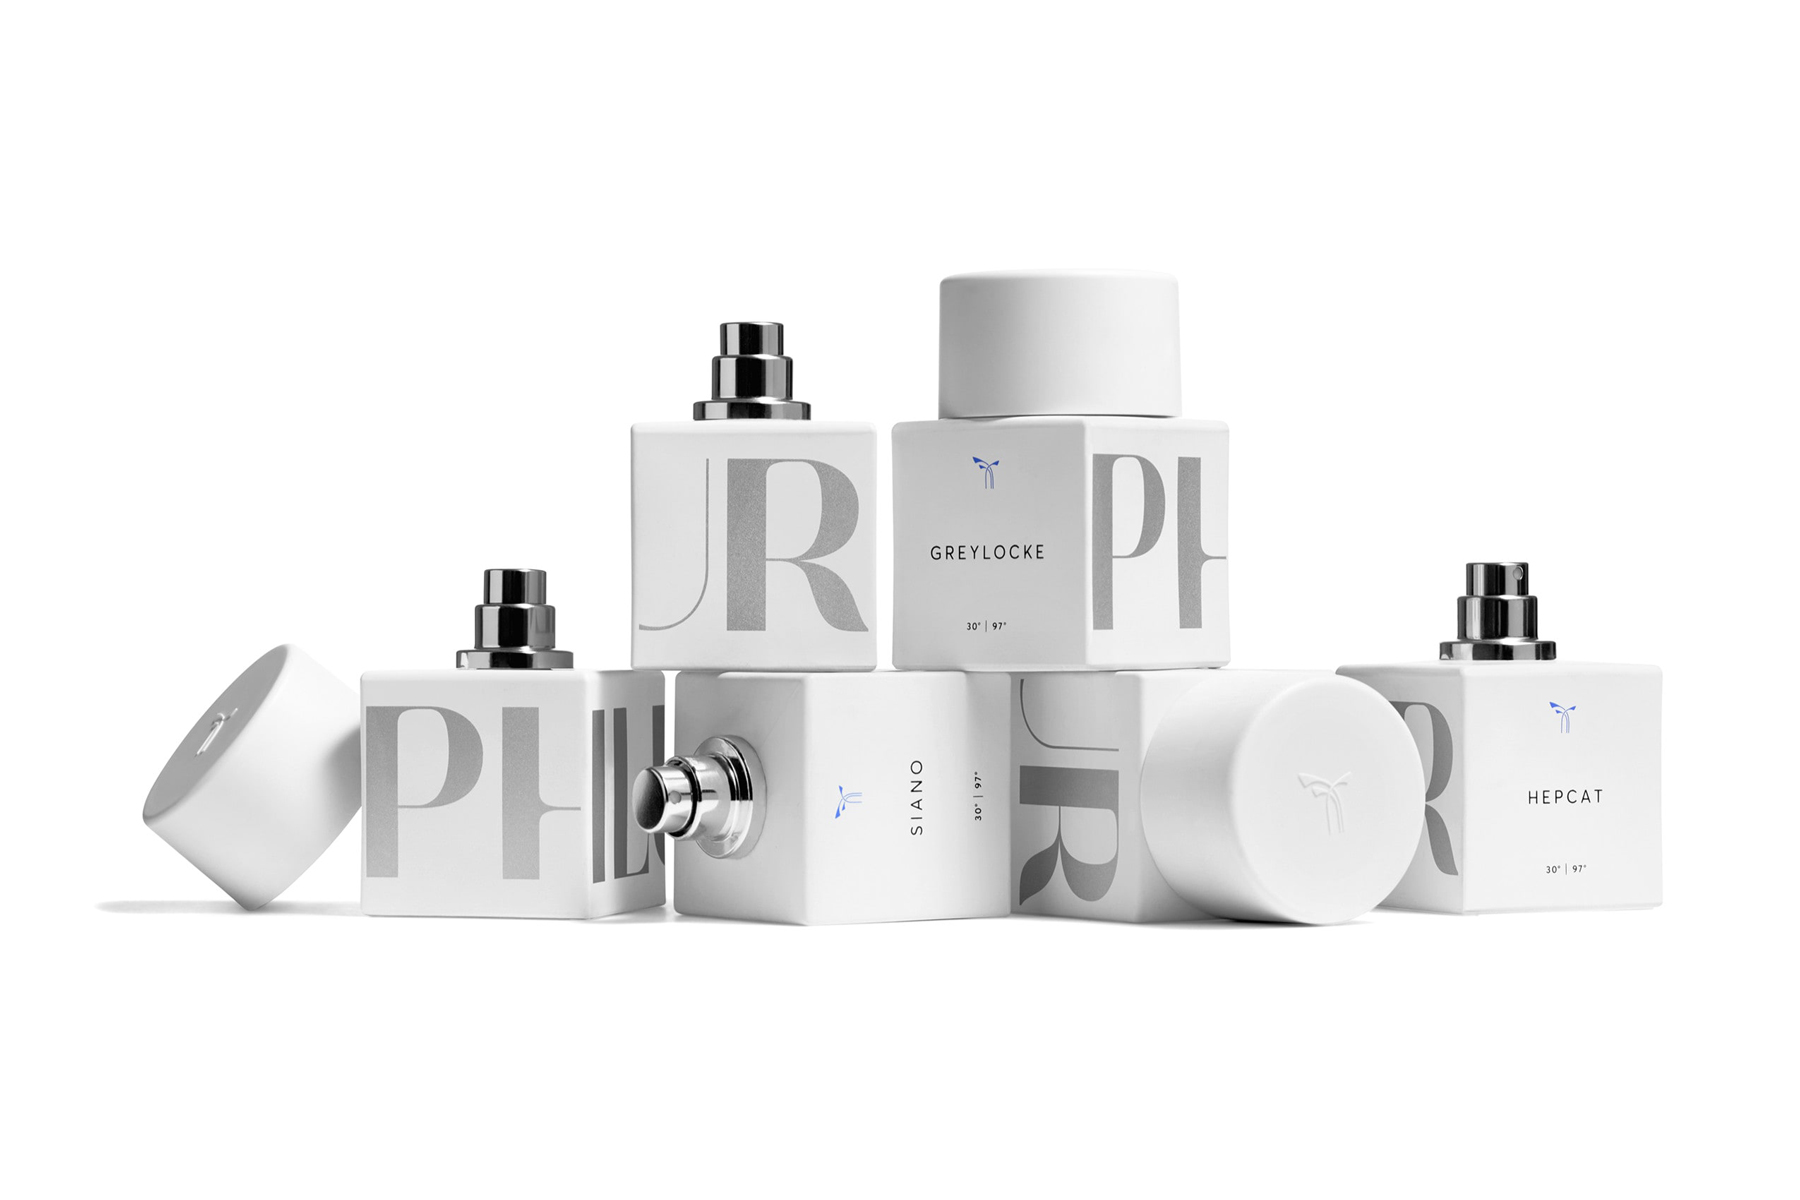 PHLUR Presents a Gender-Neutral Fragrance Line